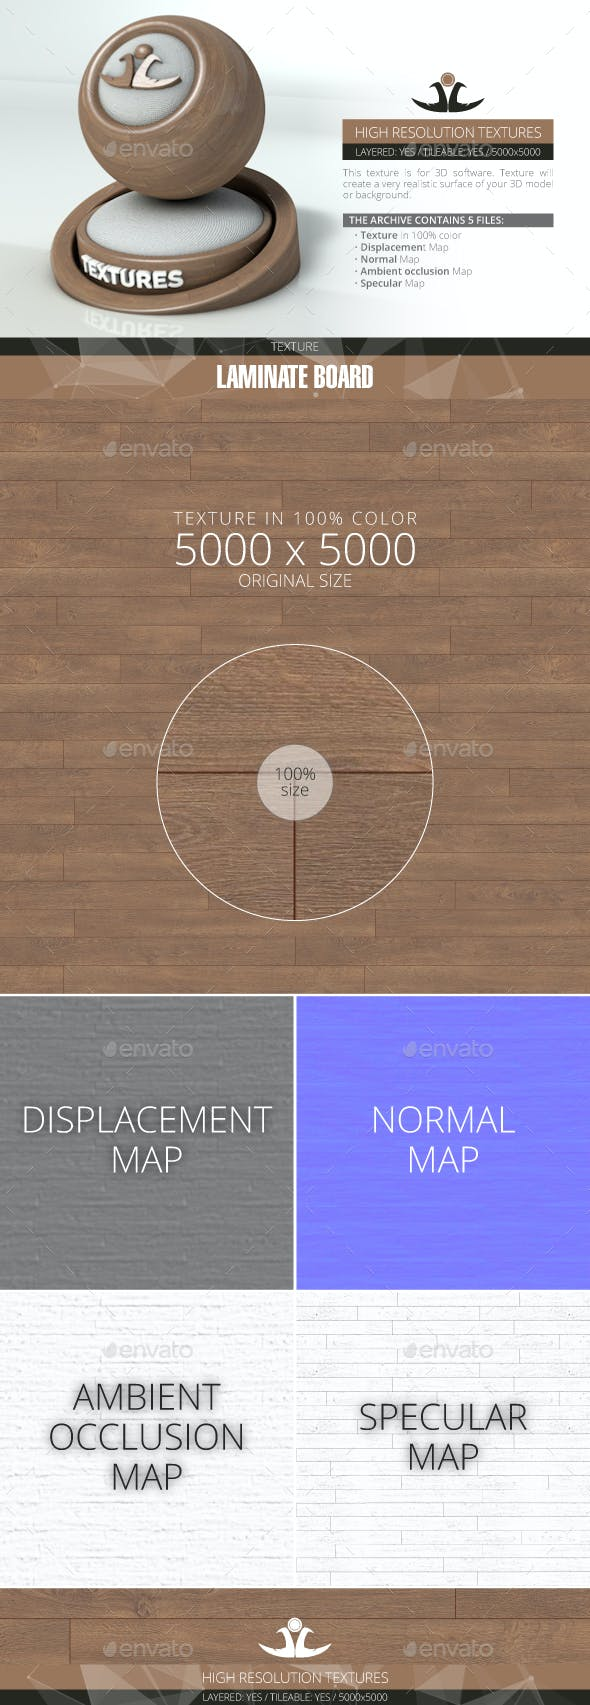 Laminate Board 20 - 3DOcean Item for Sale